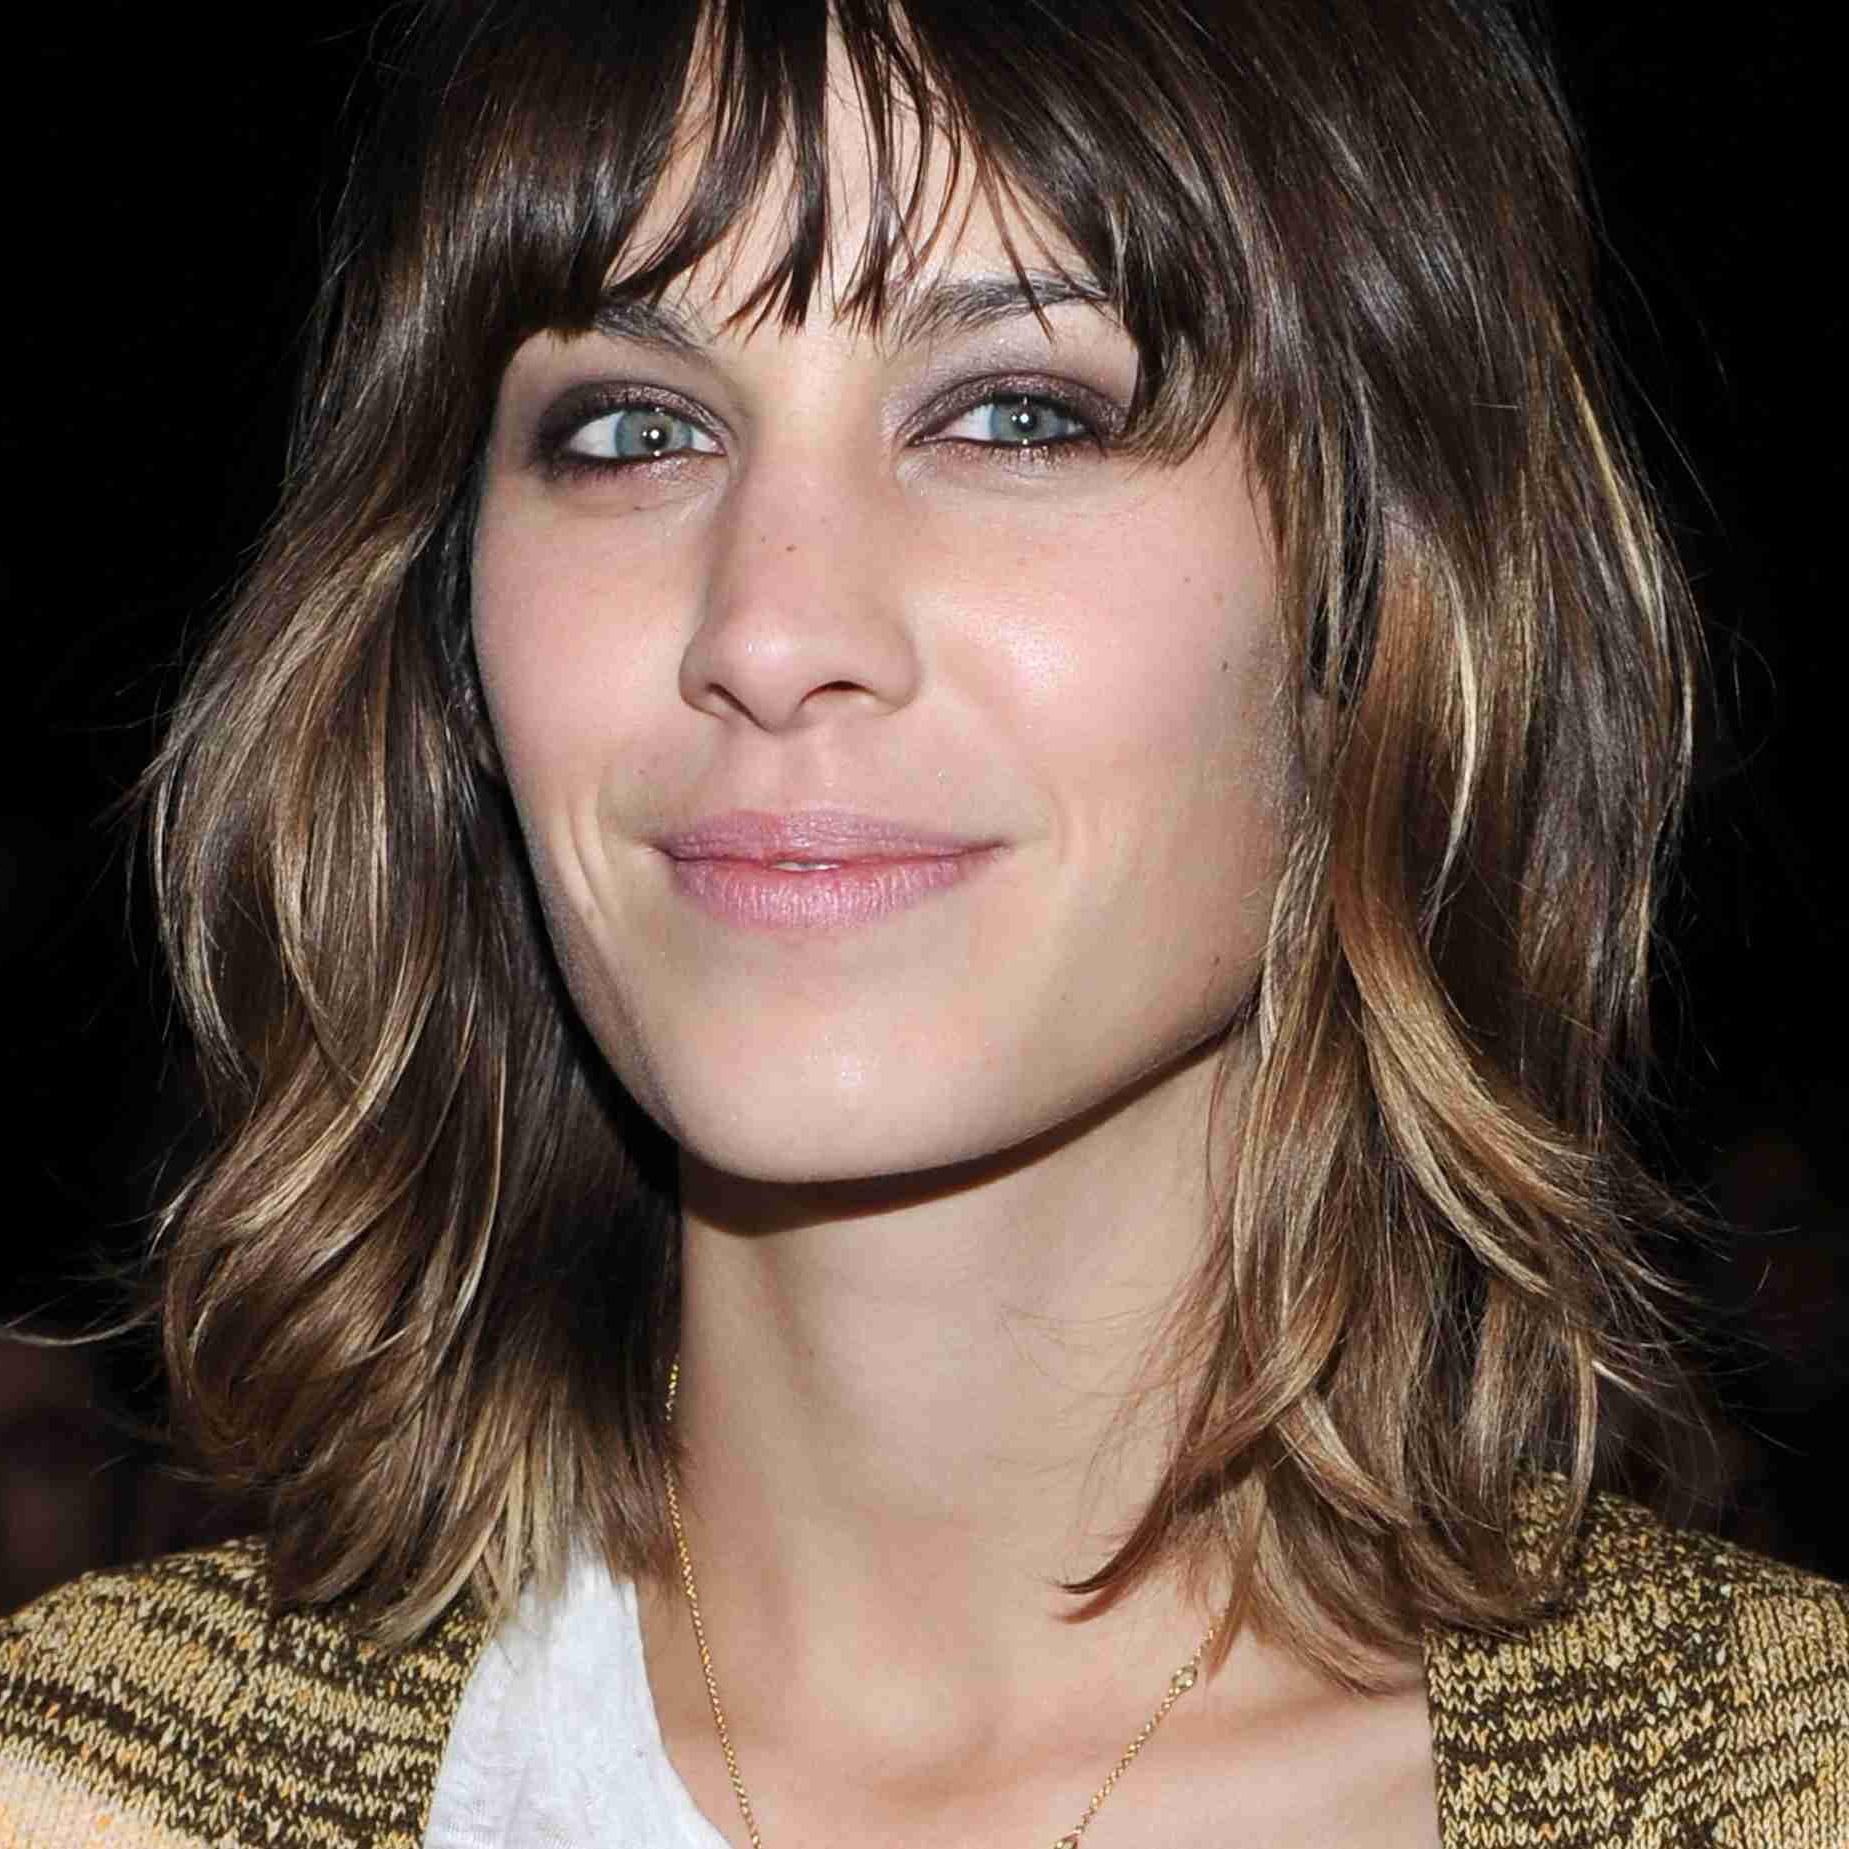 Can't Miss Shag Haircuts, From Short To Long Inside Short Highlighted Shaggy Haircuts (View 10 of 20)